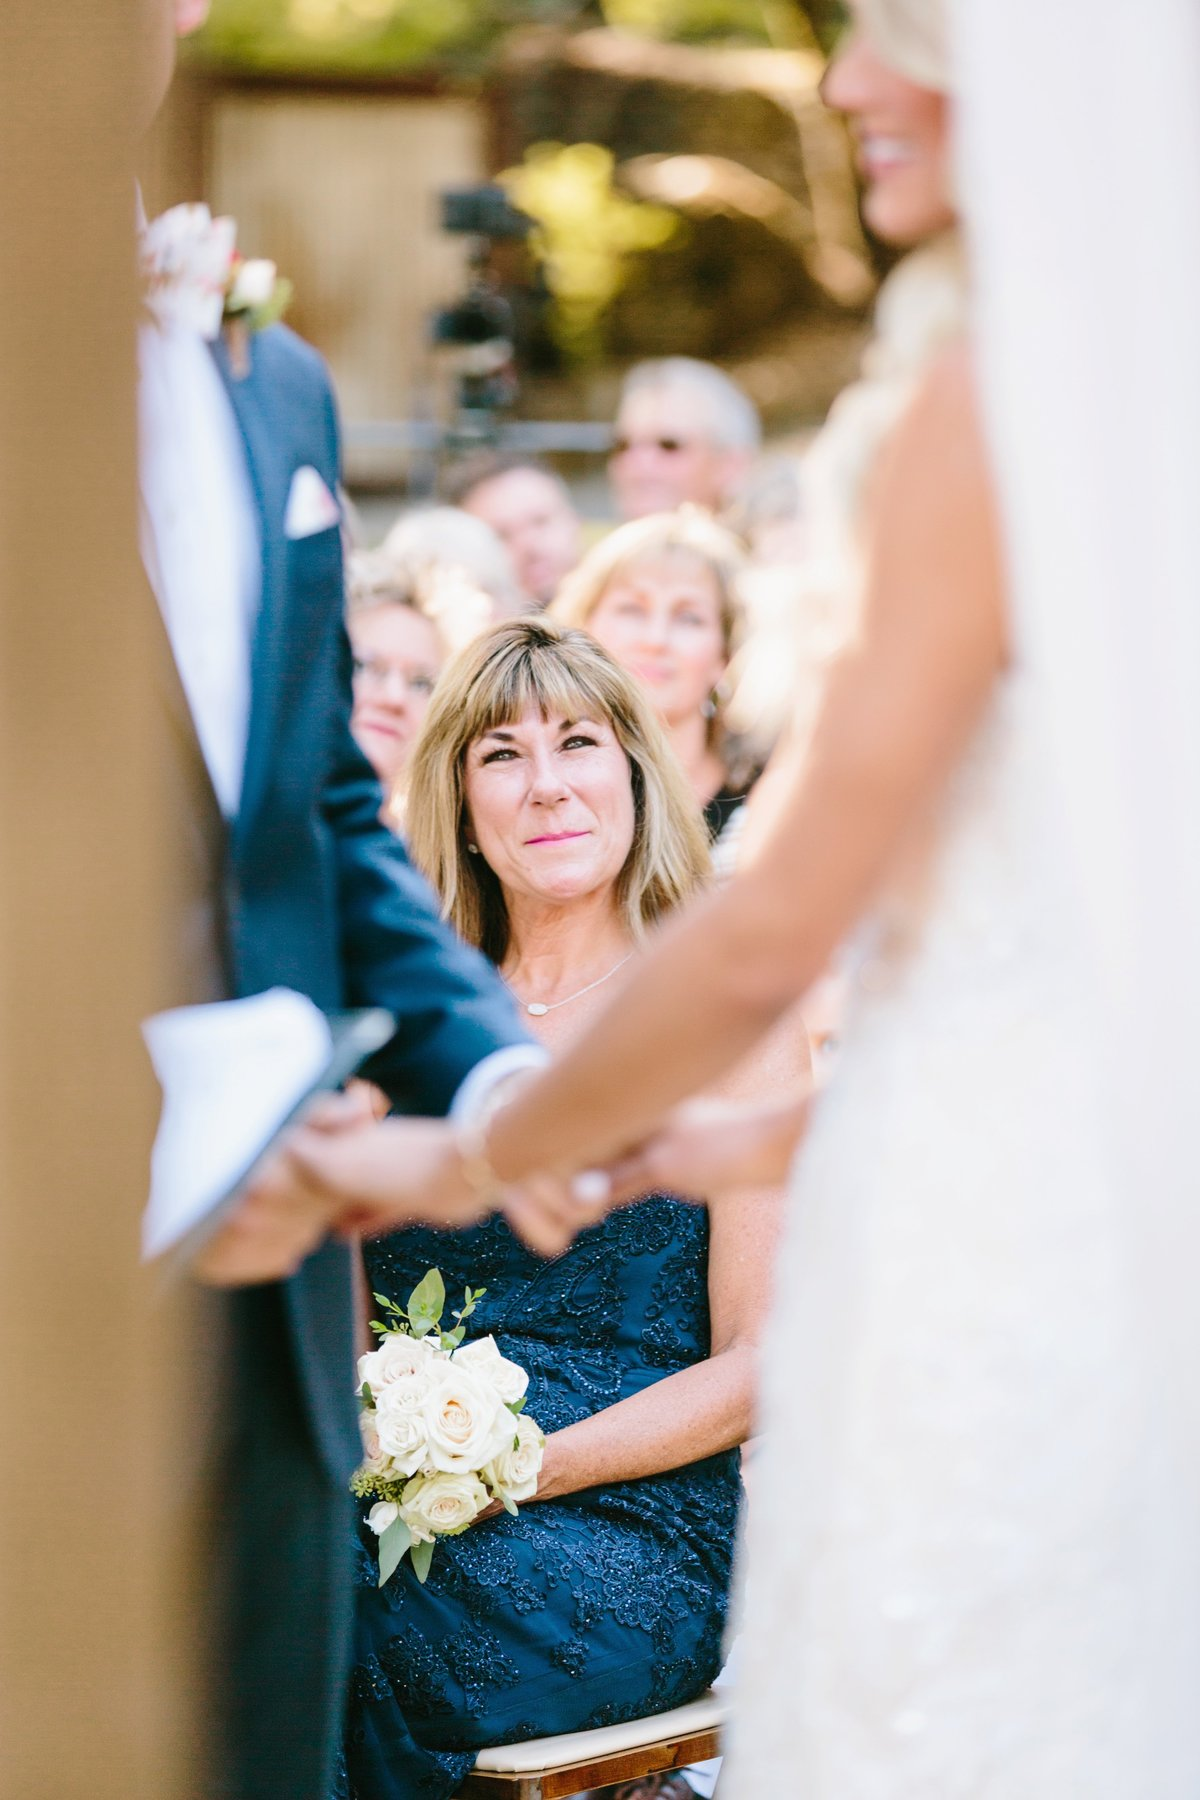 Wedding Photos-Jodee Debes Photography-063